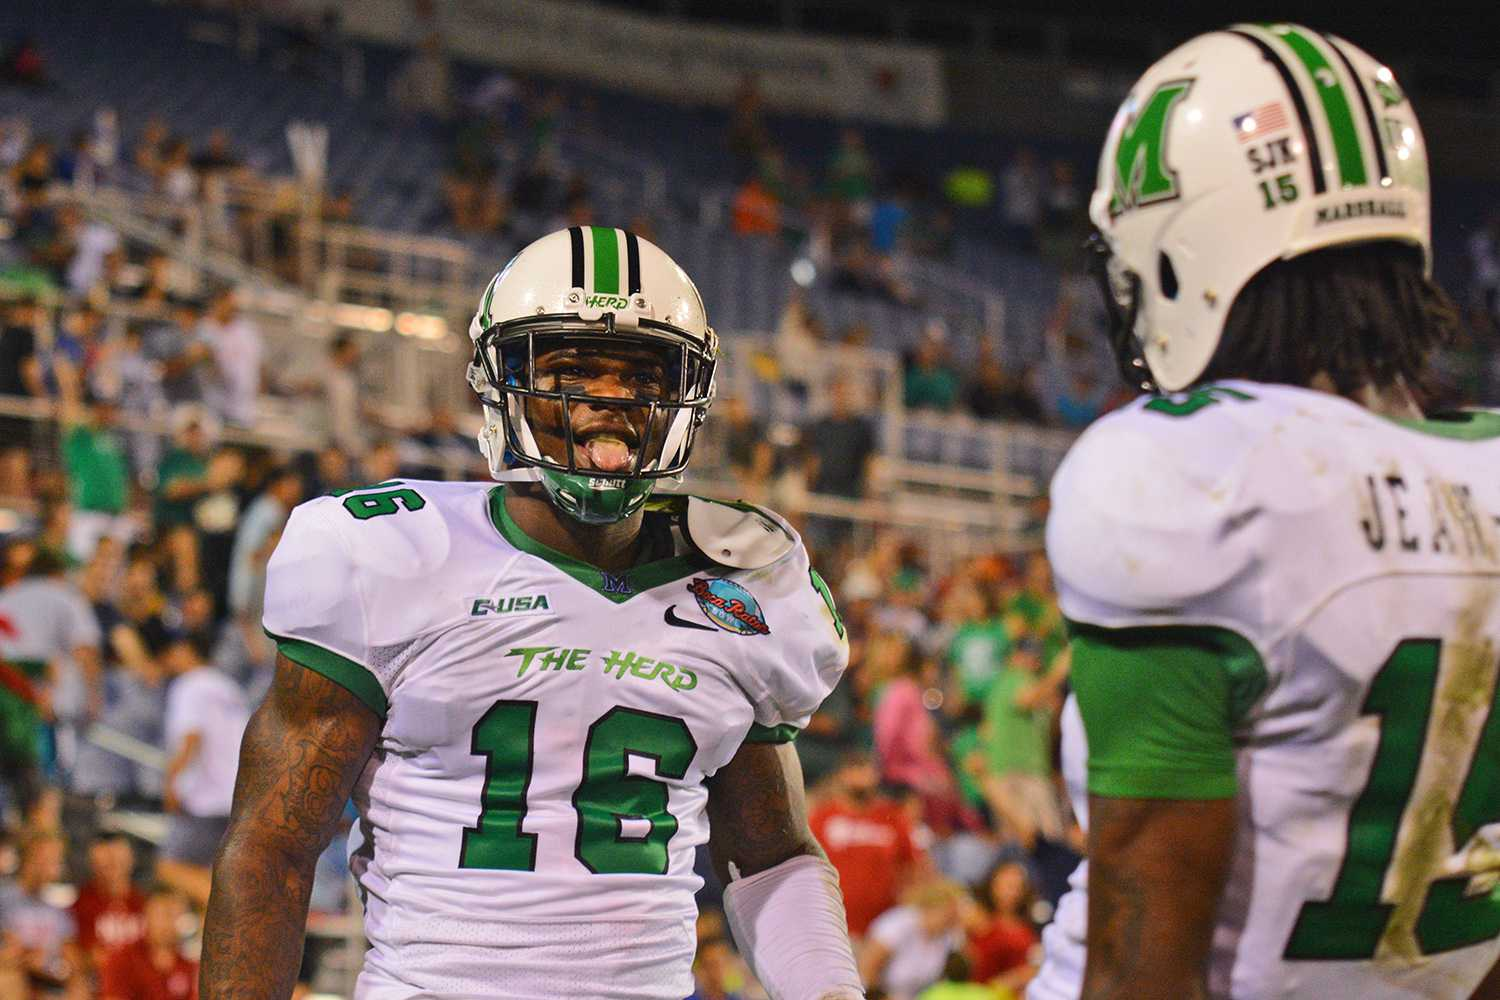 Deon-Tay McManus celebrates with Angelo Jean-Louis after he (McManus) scored a touchdown. McManus, a wide receiver from Baltimore, caught a 27-yard pass from Marshall QB Rakeem Cato, and after the extra point, the score stood at 45-20 in favor of the Thundering Herd.